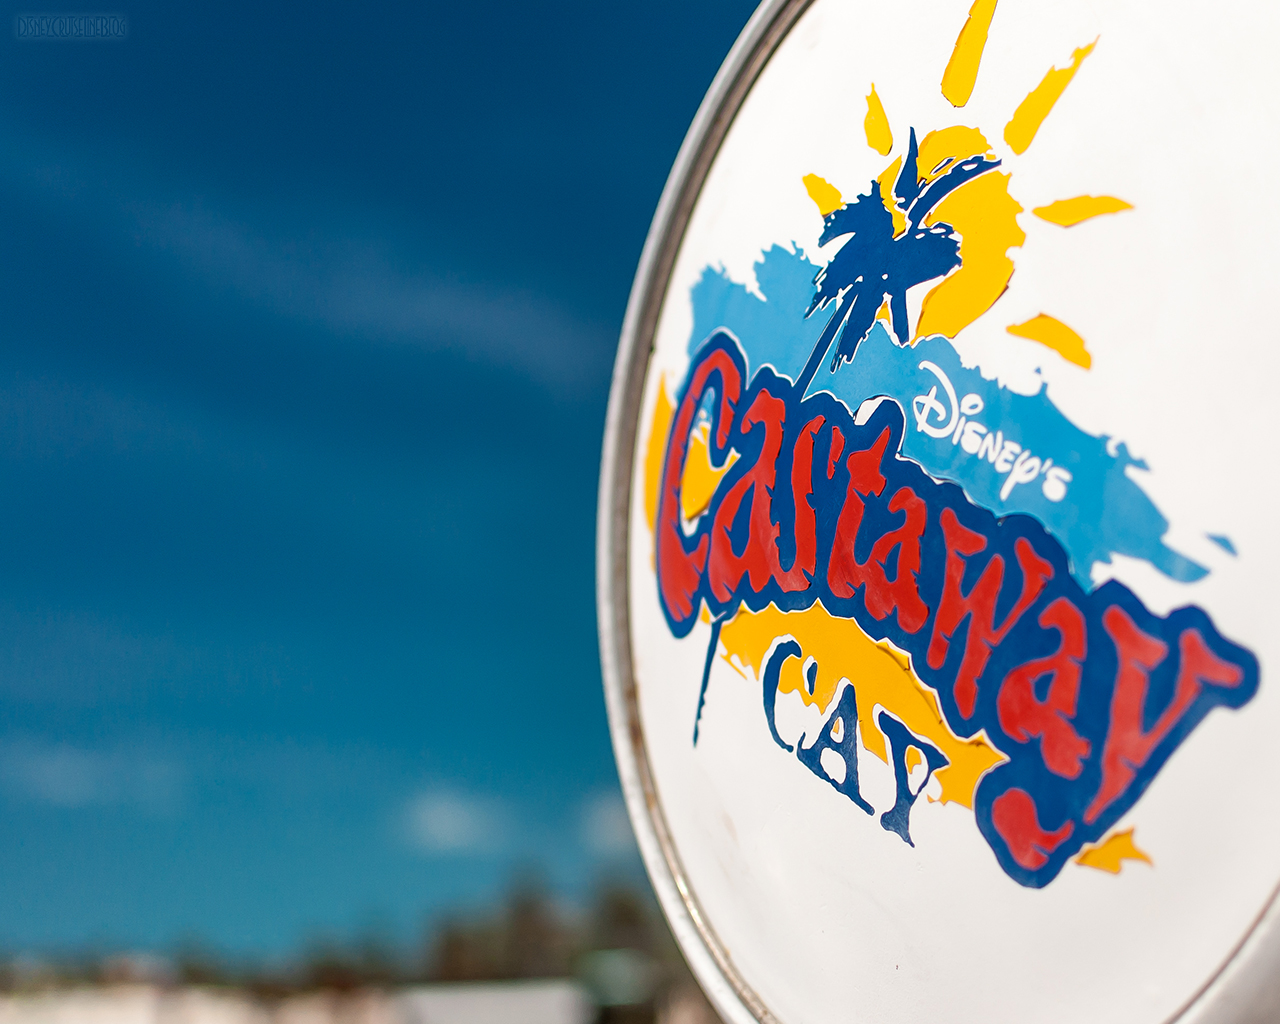 Castaway Cay Gas Pump 1280×1024 Wallpaper